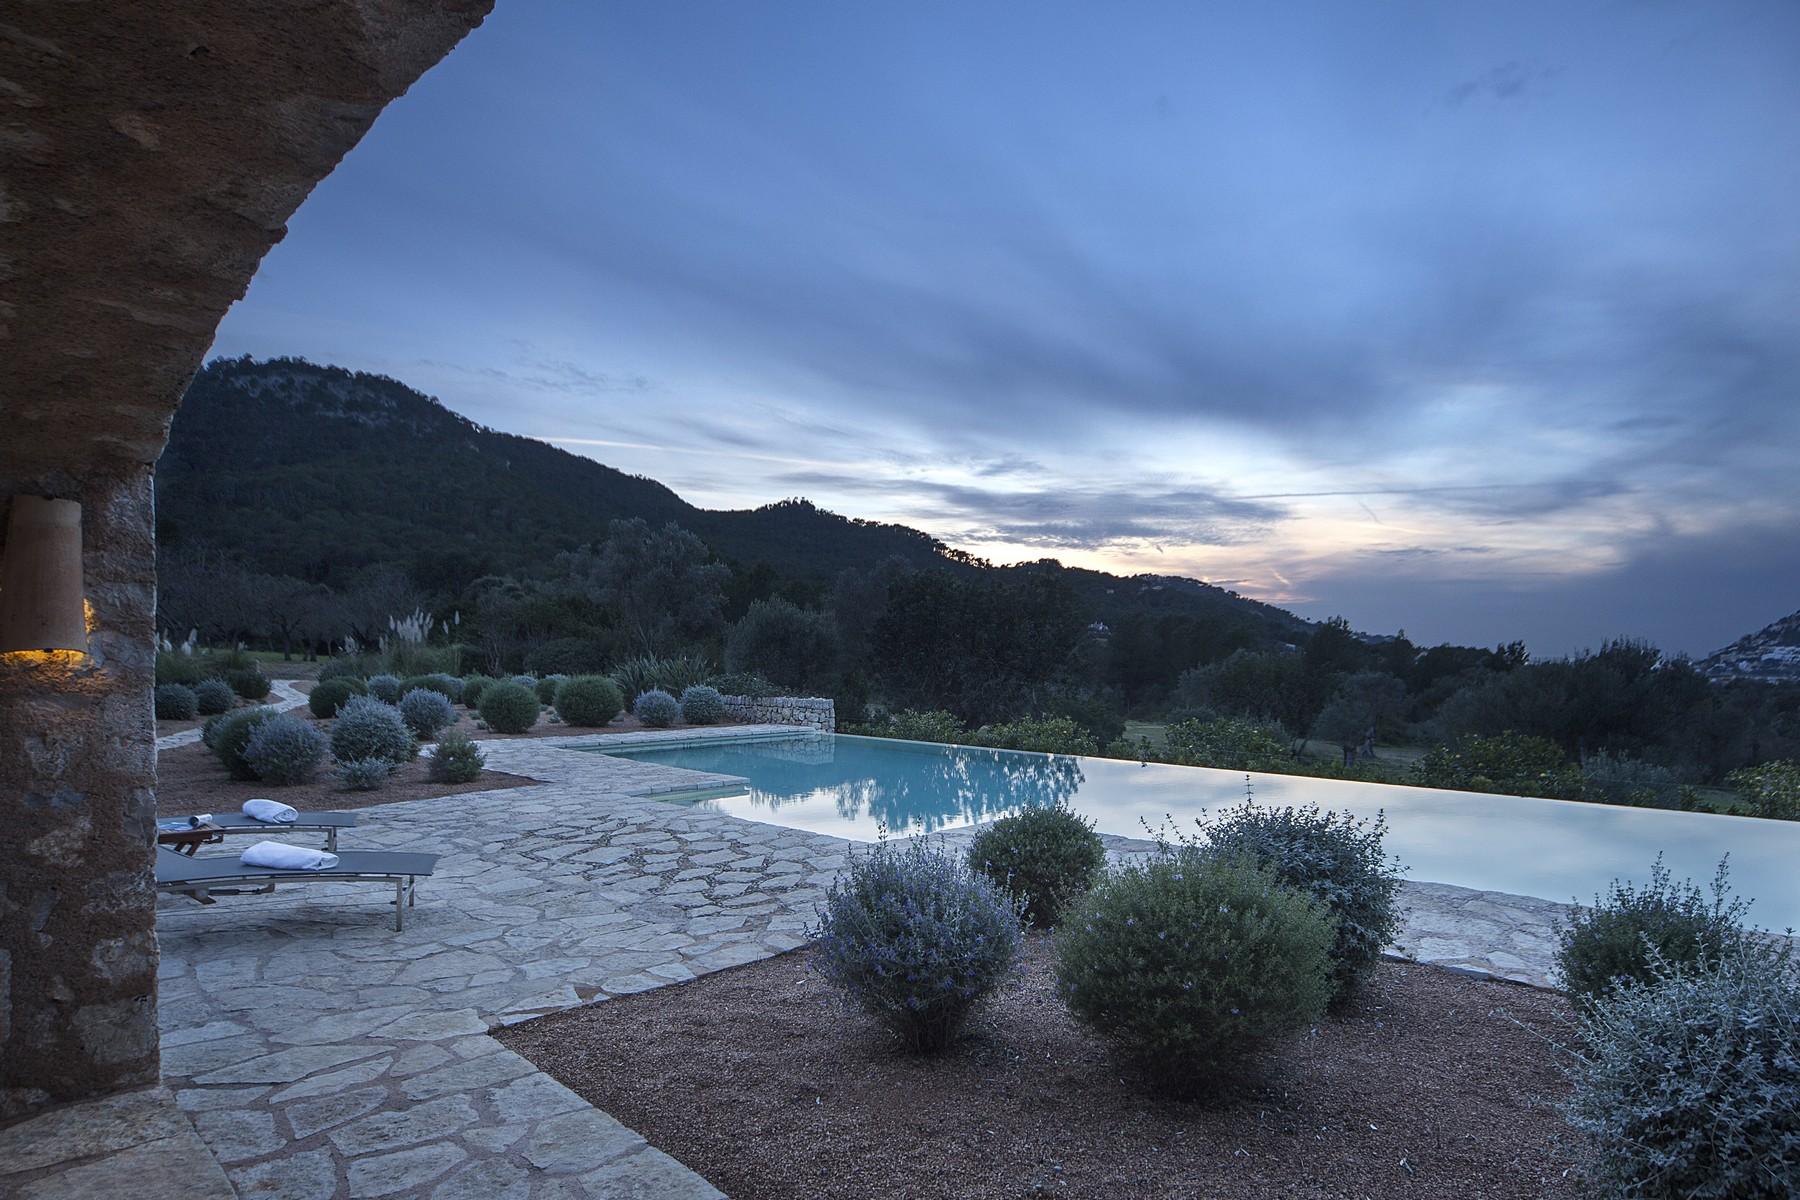 Single Family Home for Sale at The Majorcan dream with views to the Pto Andratx Port Andratx, Mallorca, 07160 Spain